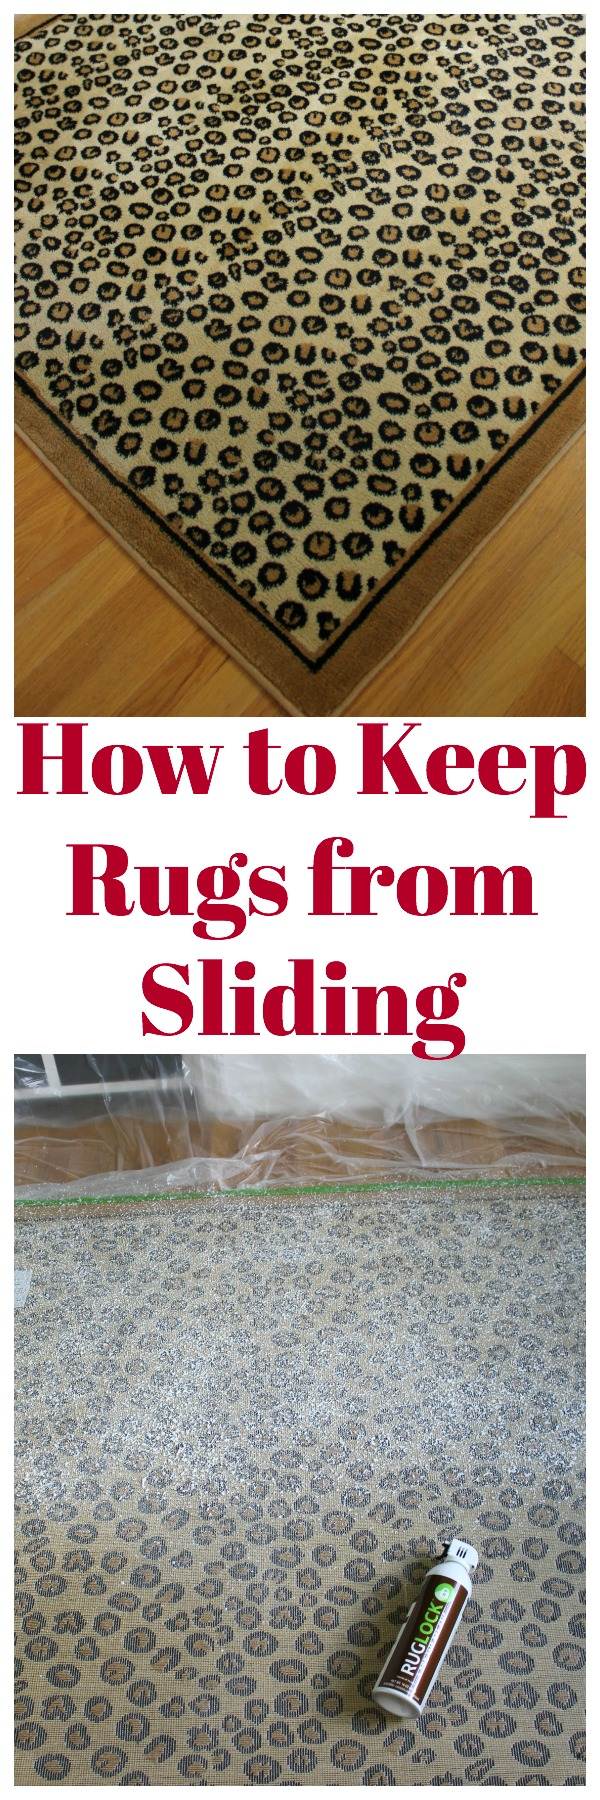 How to Keep Rugs from Sliding | Rug Slipping Fix | How to Keep Rugs in Place | DIY Rug Idea | How to Keep Rugs from Slipping